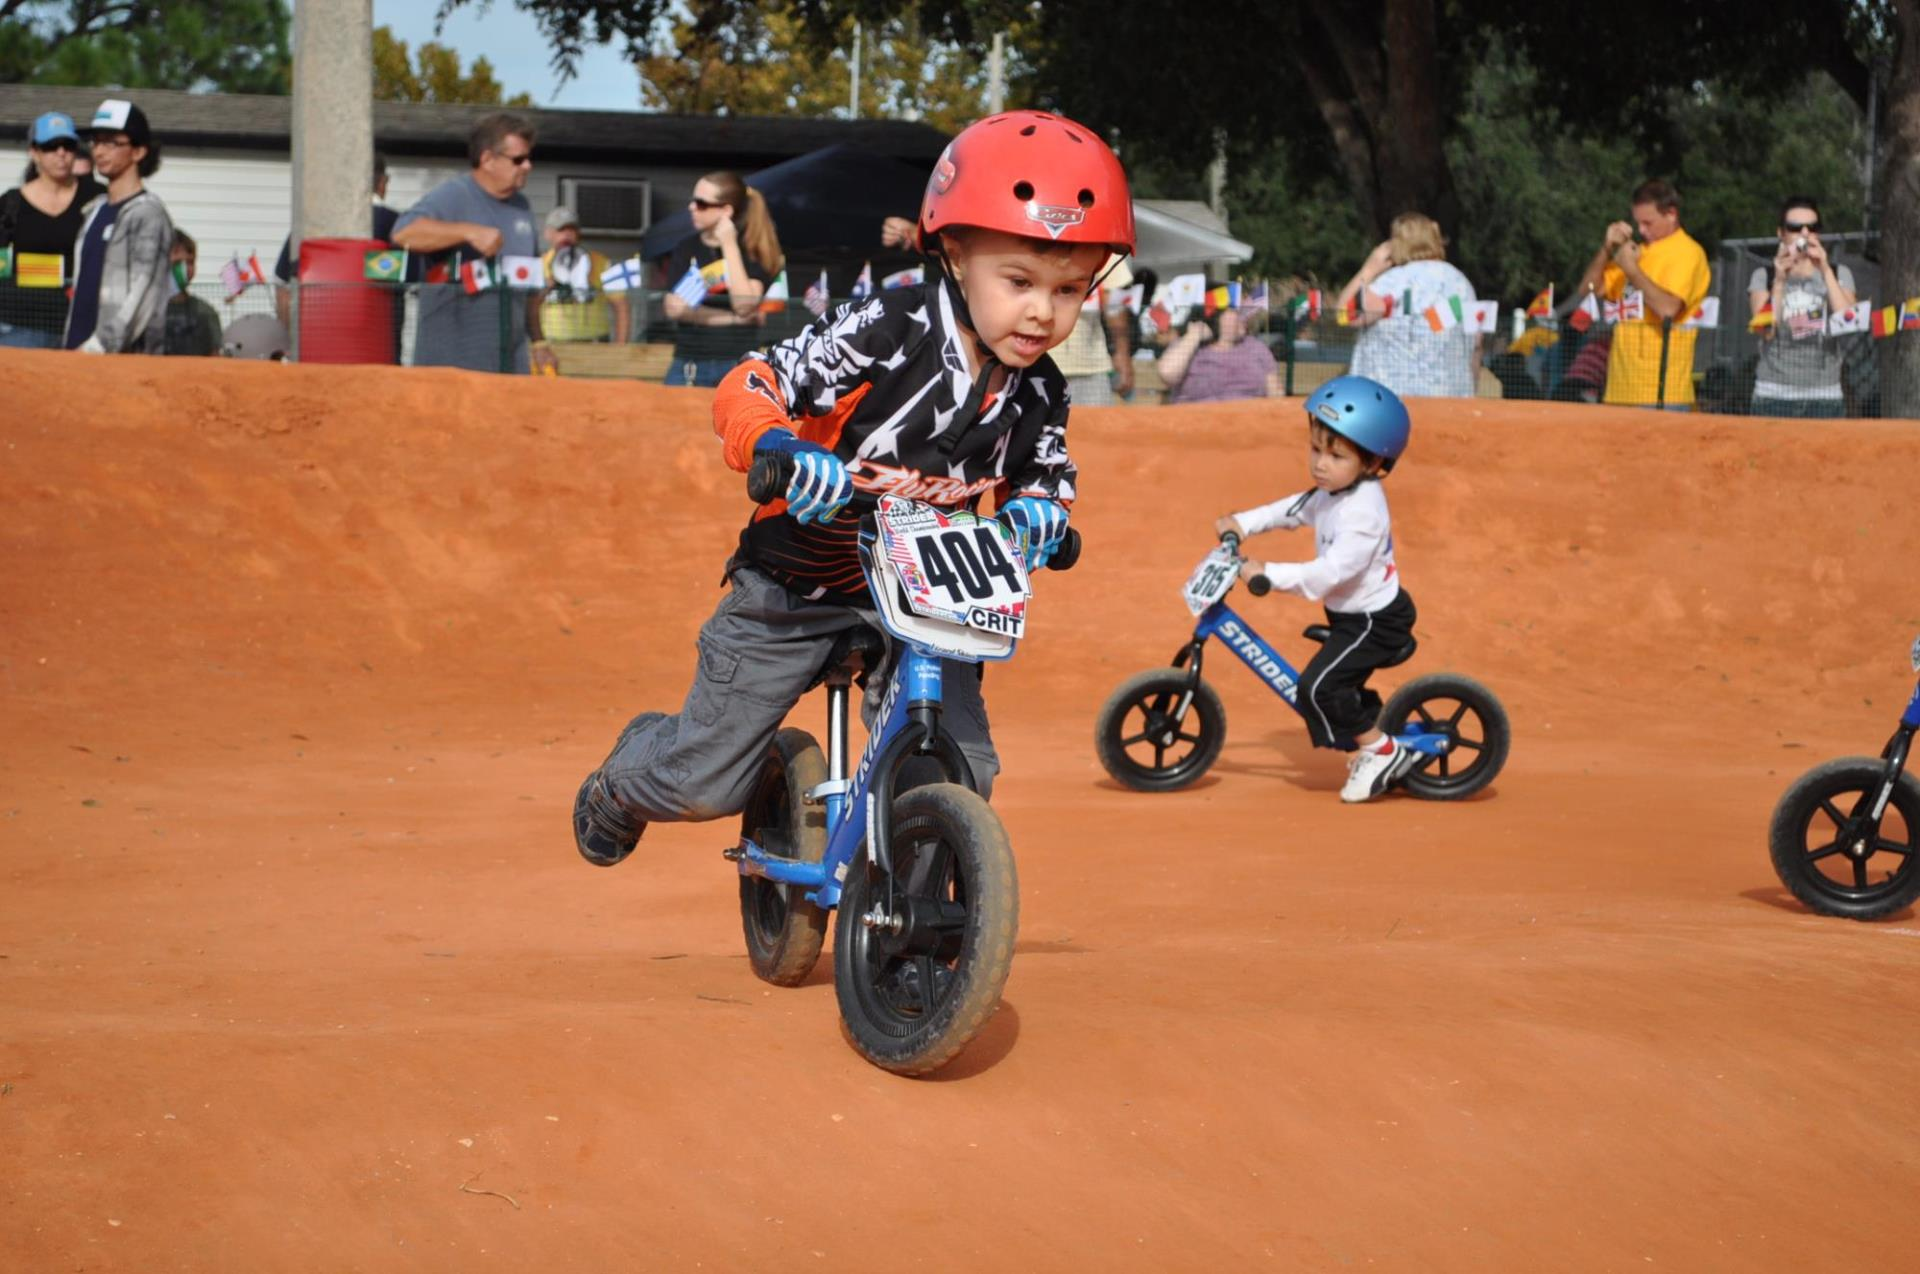 Young Strider bike ride at the BMX track